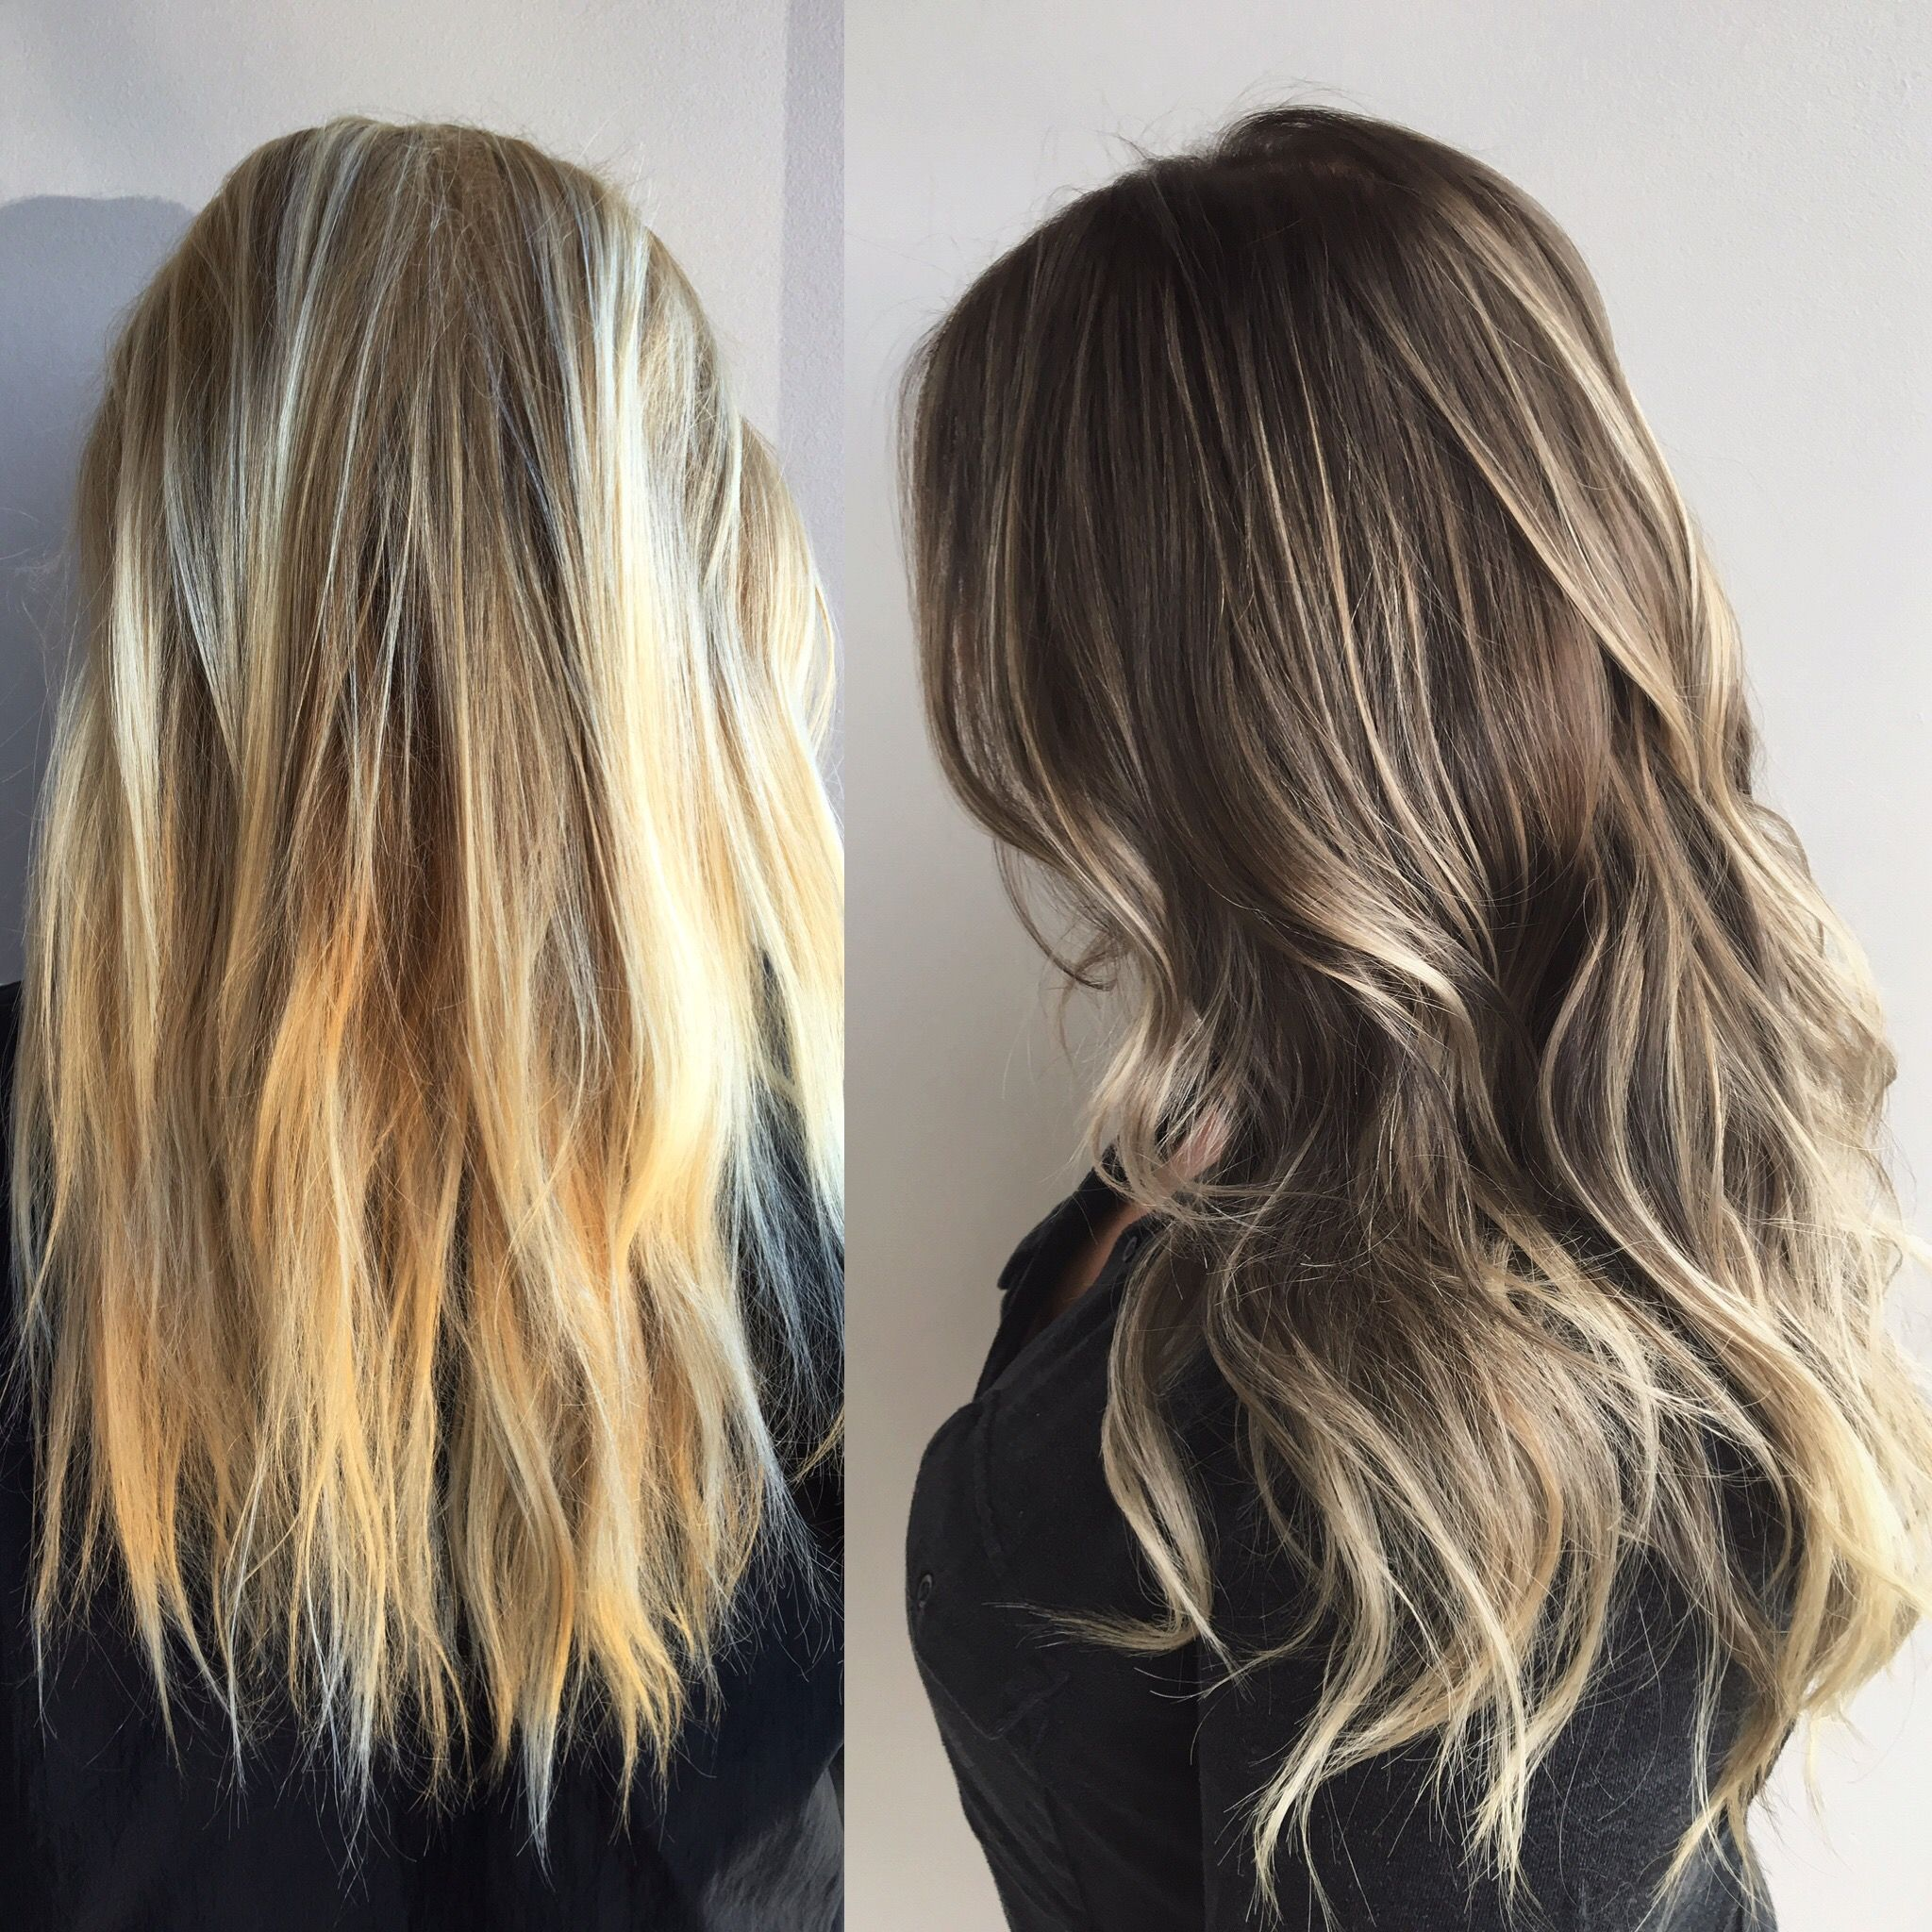 Before And After Blonde Hair To Brown Hair Blonde To Brown